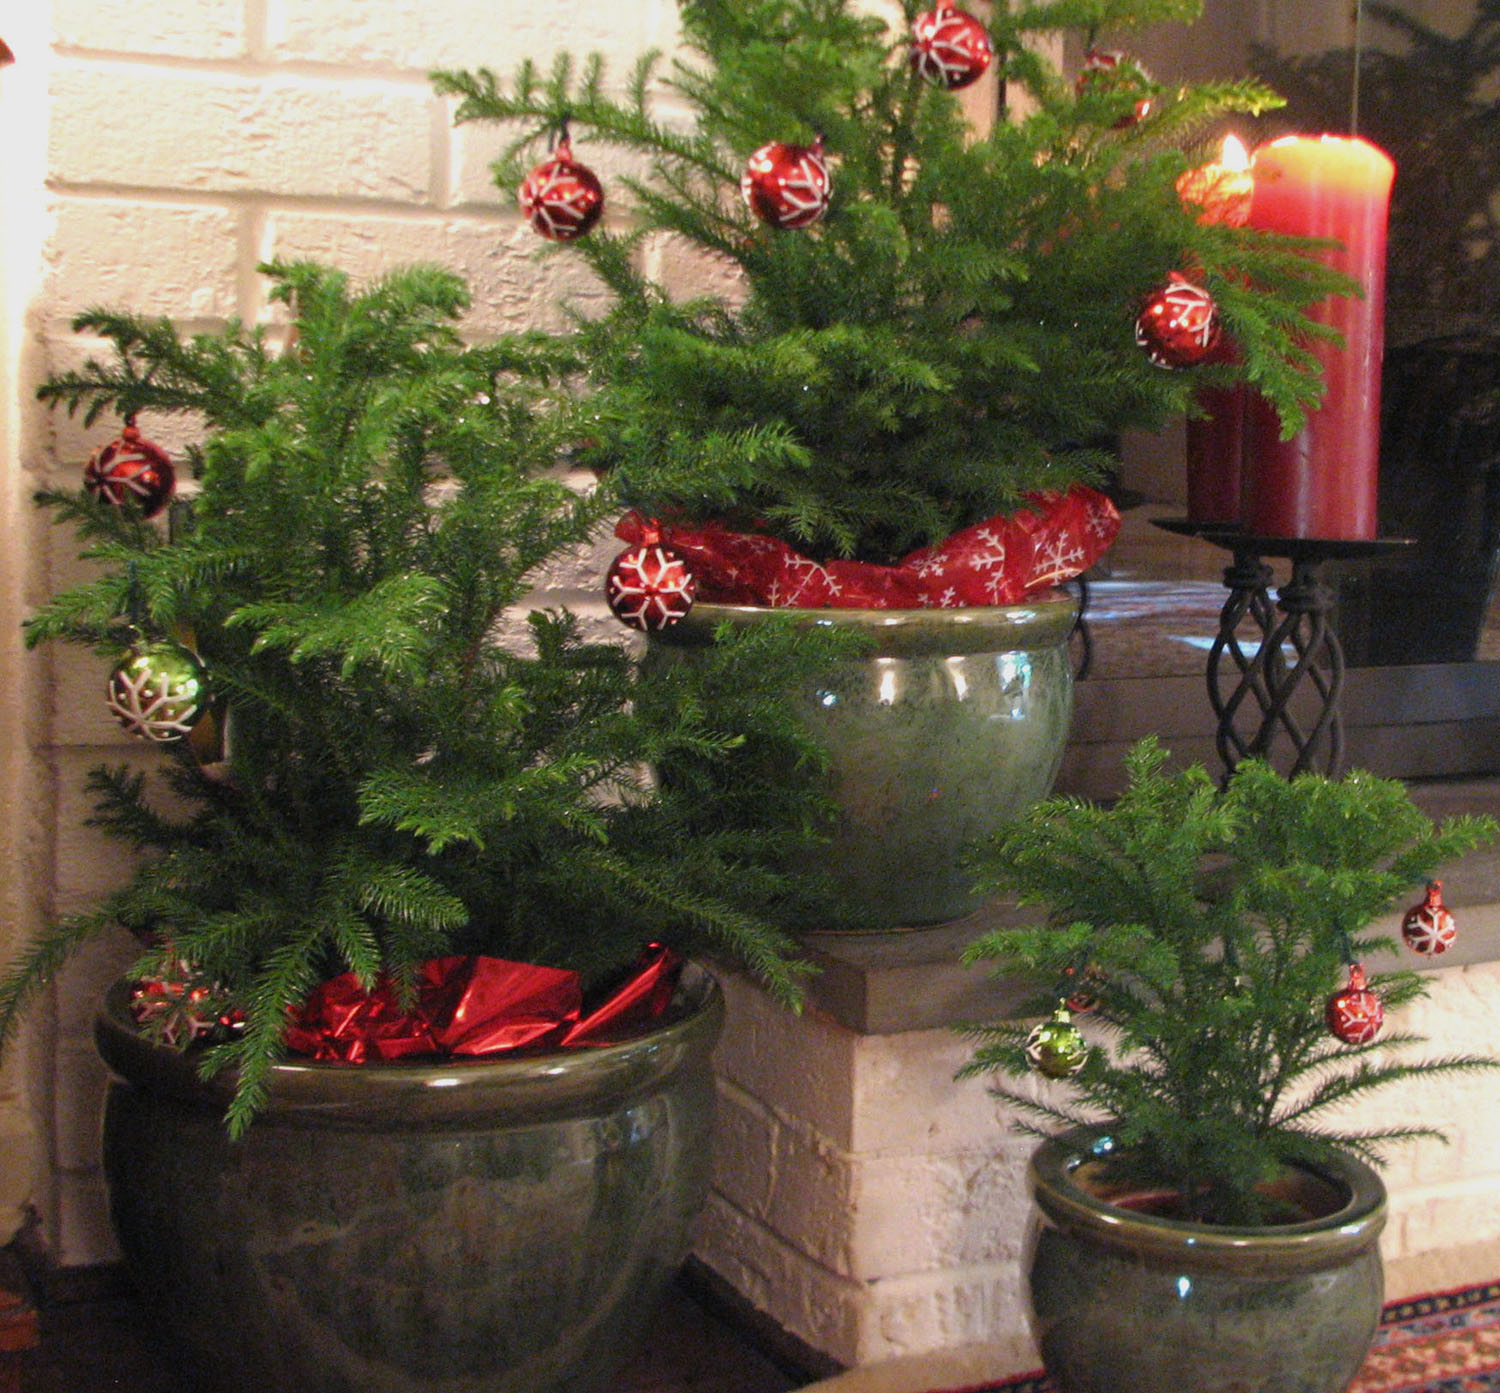 Christmas Trees Norfolk: Decorate With Live Mini Christmas Trees This Holiday Season